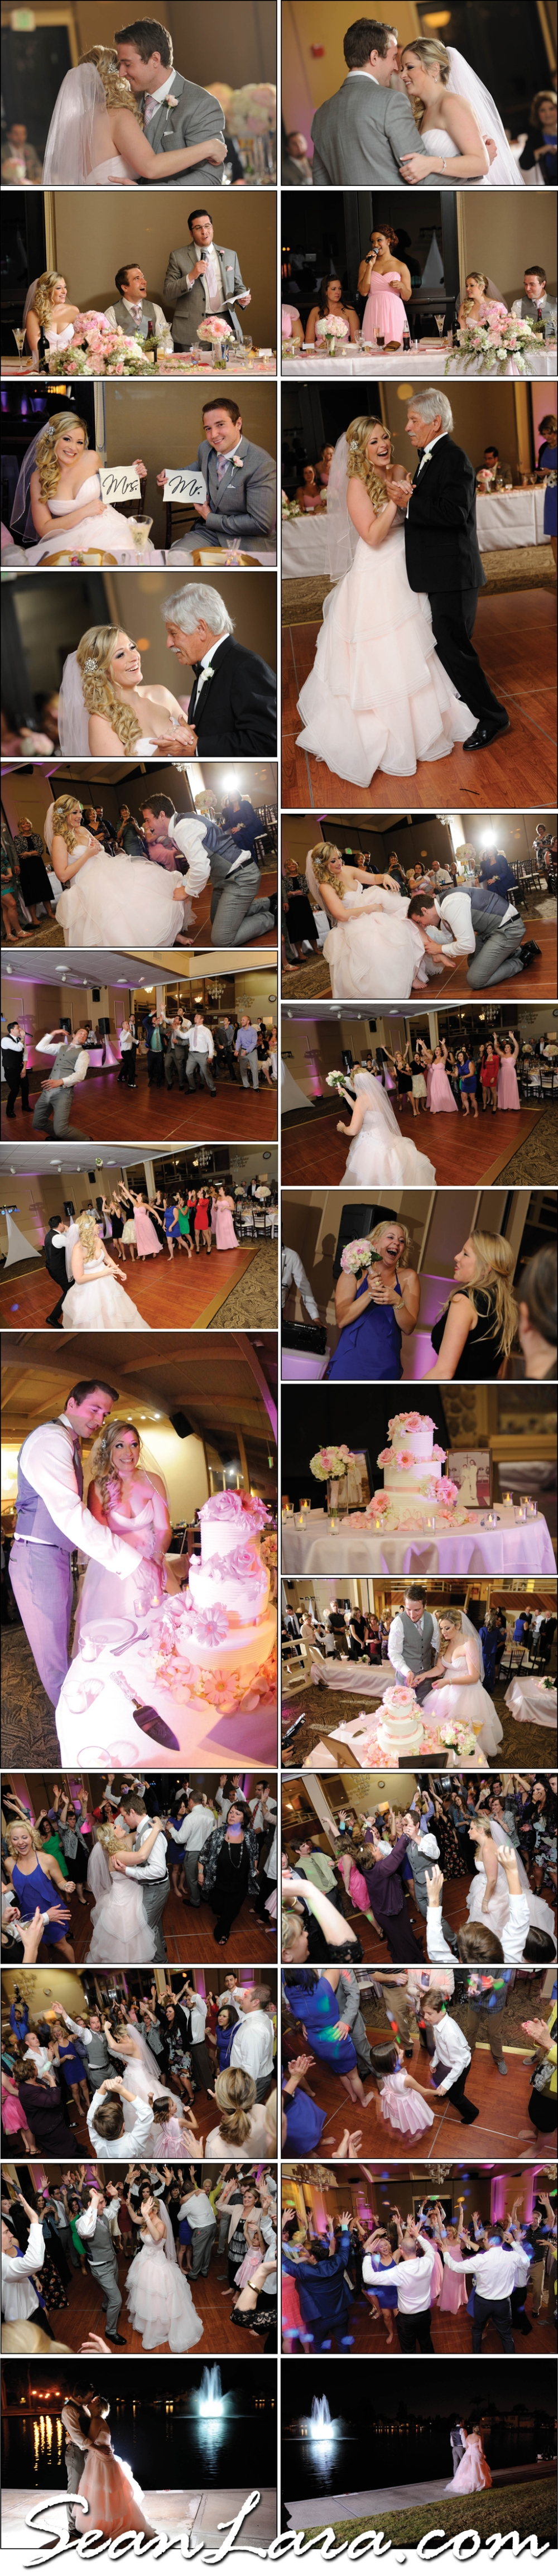 lake-forest-wedding-5